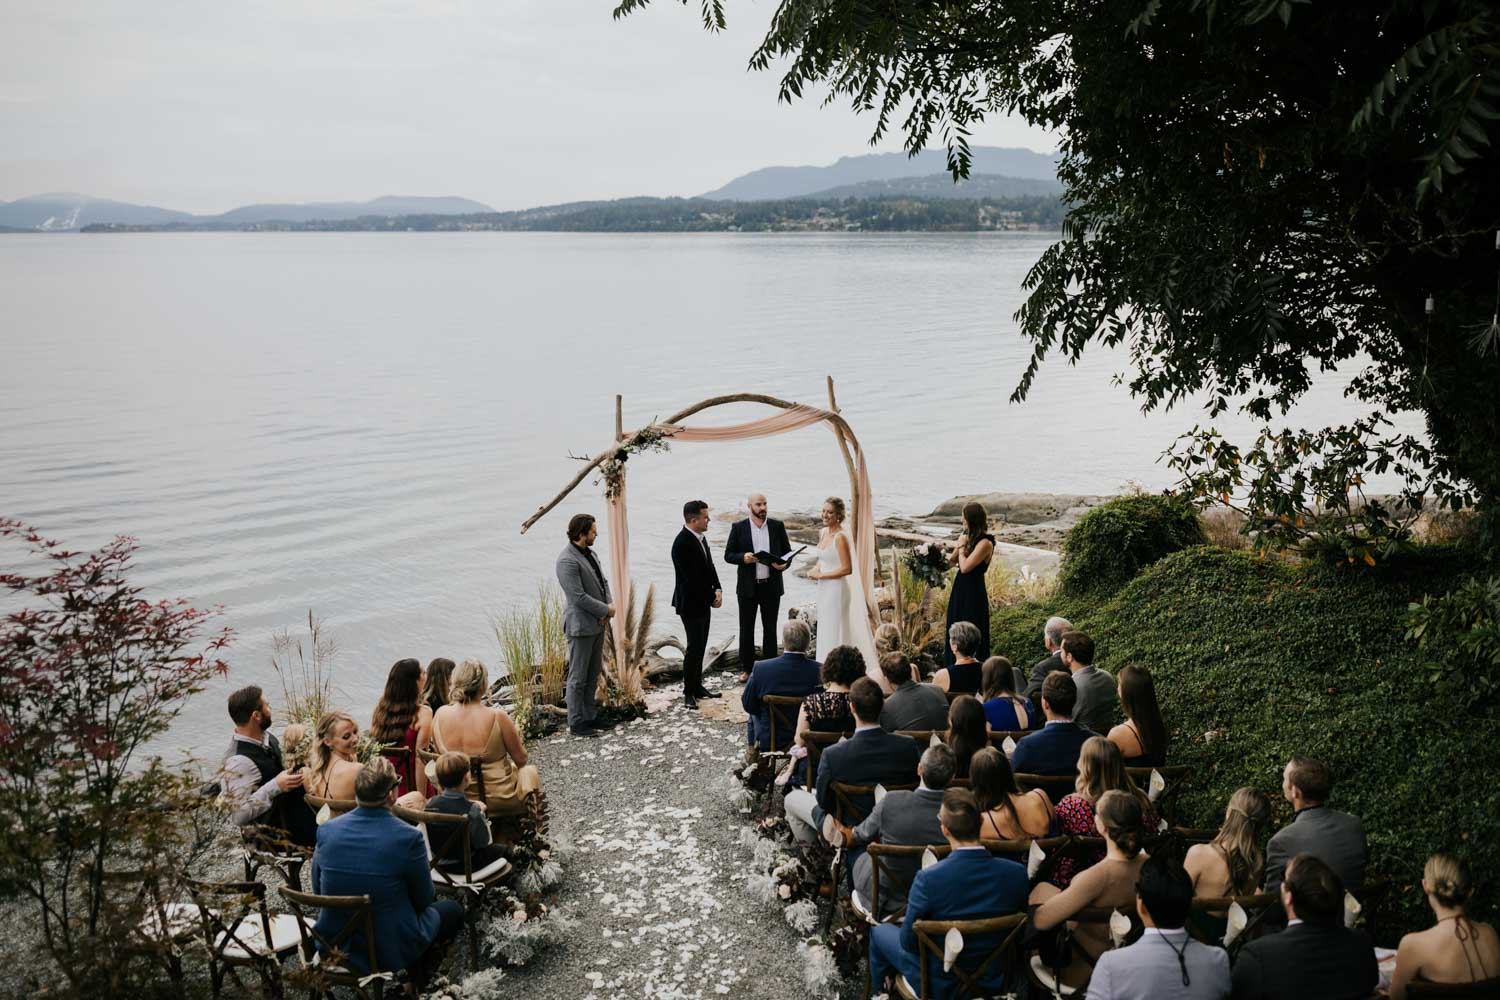 Perfect intimate Vancouver Island Wedding Venue on the beach with mountain views